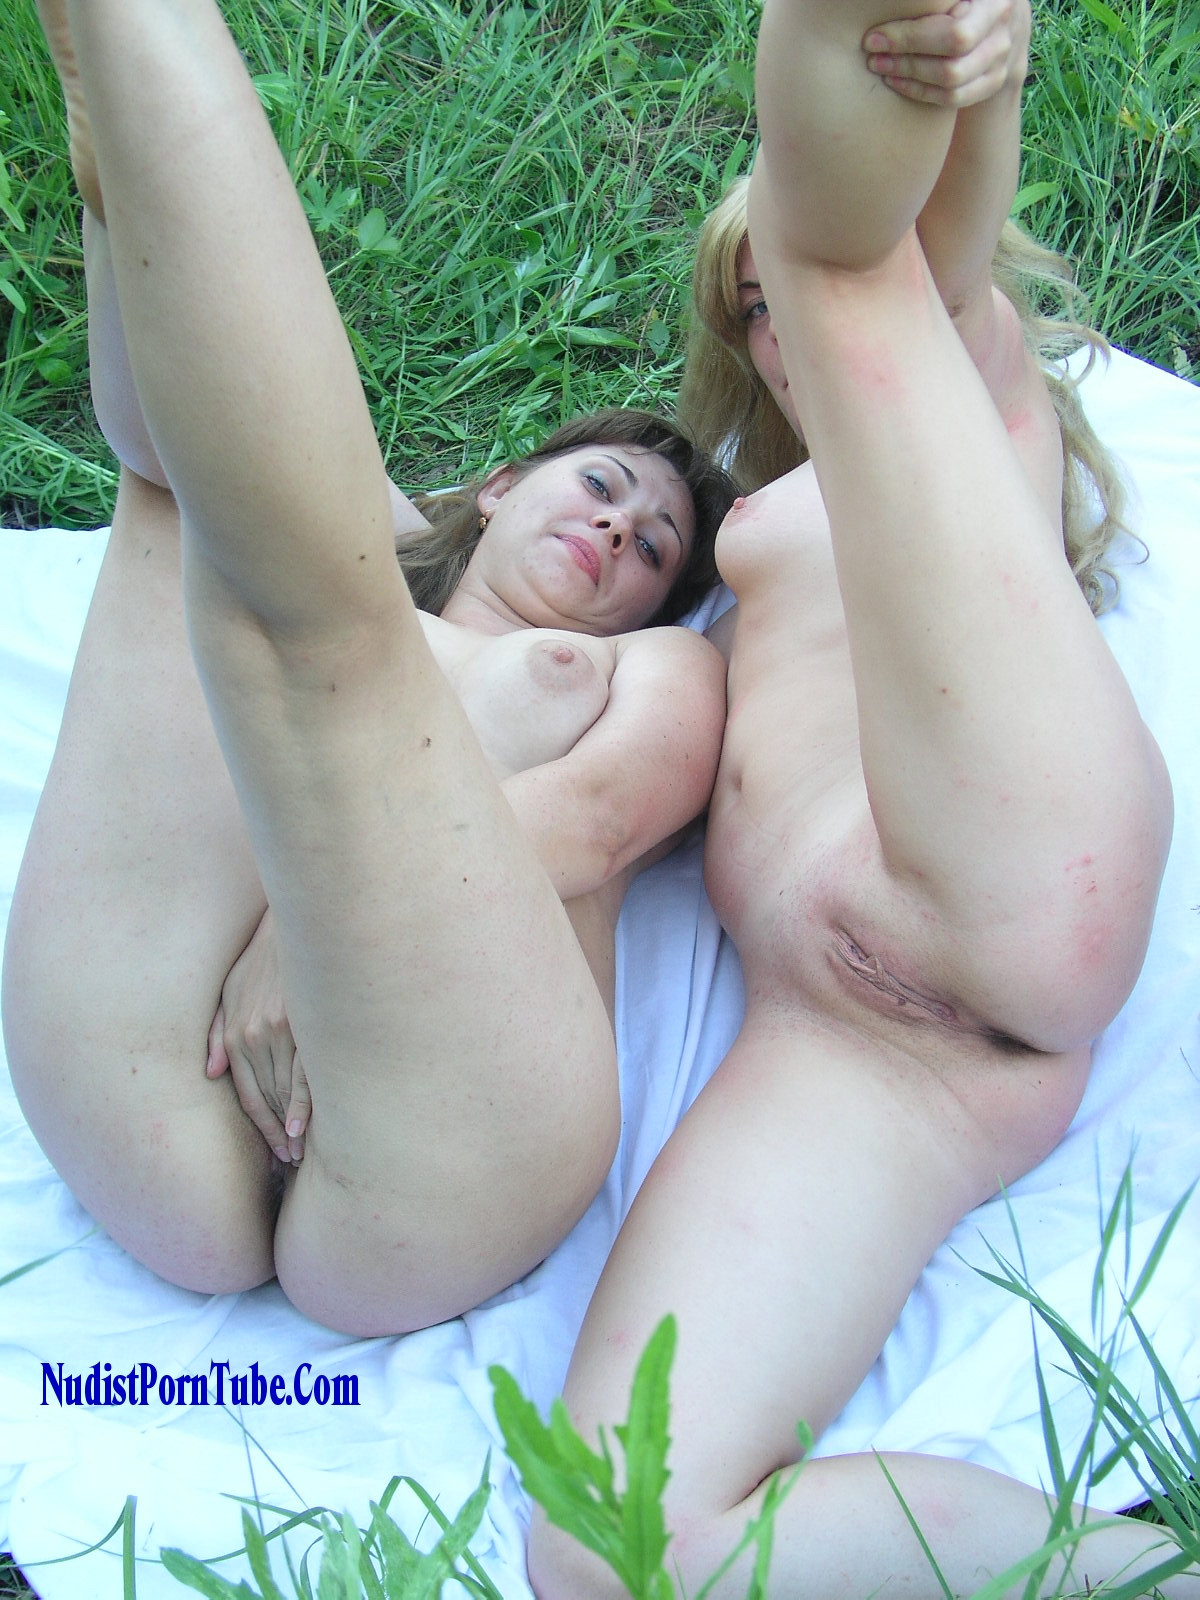 Cum soaked babes images